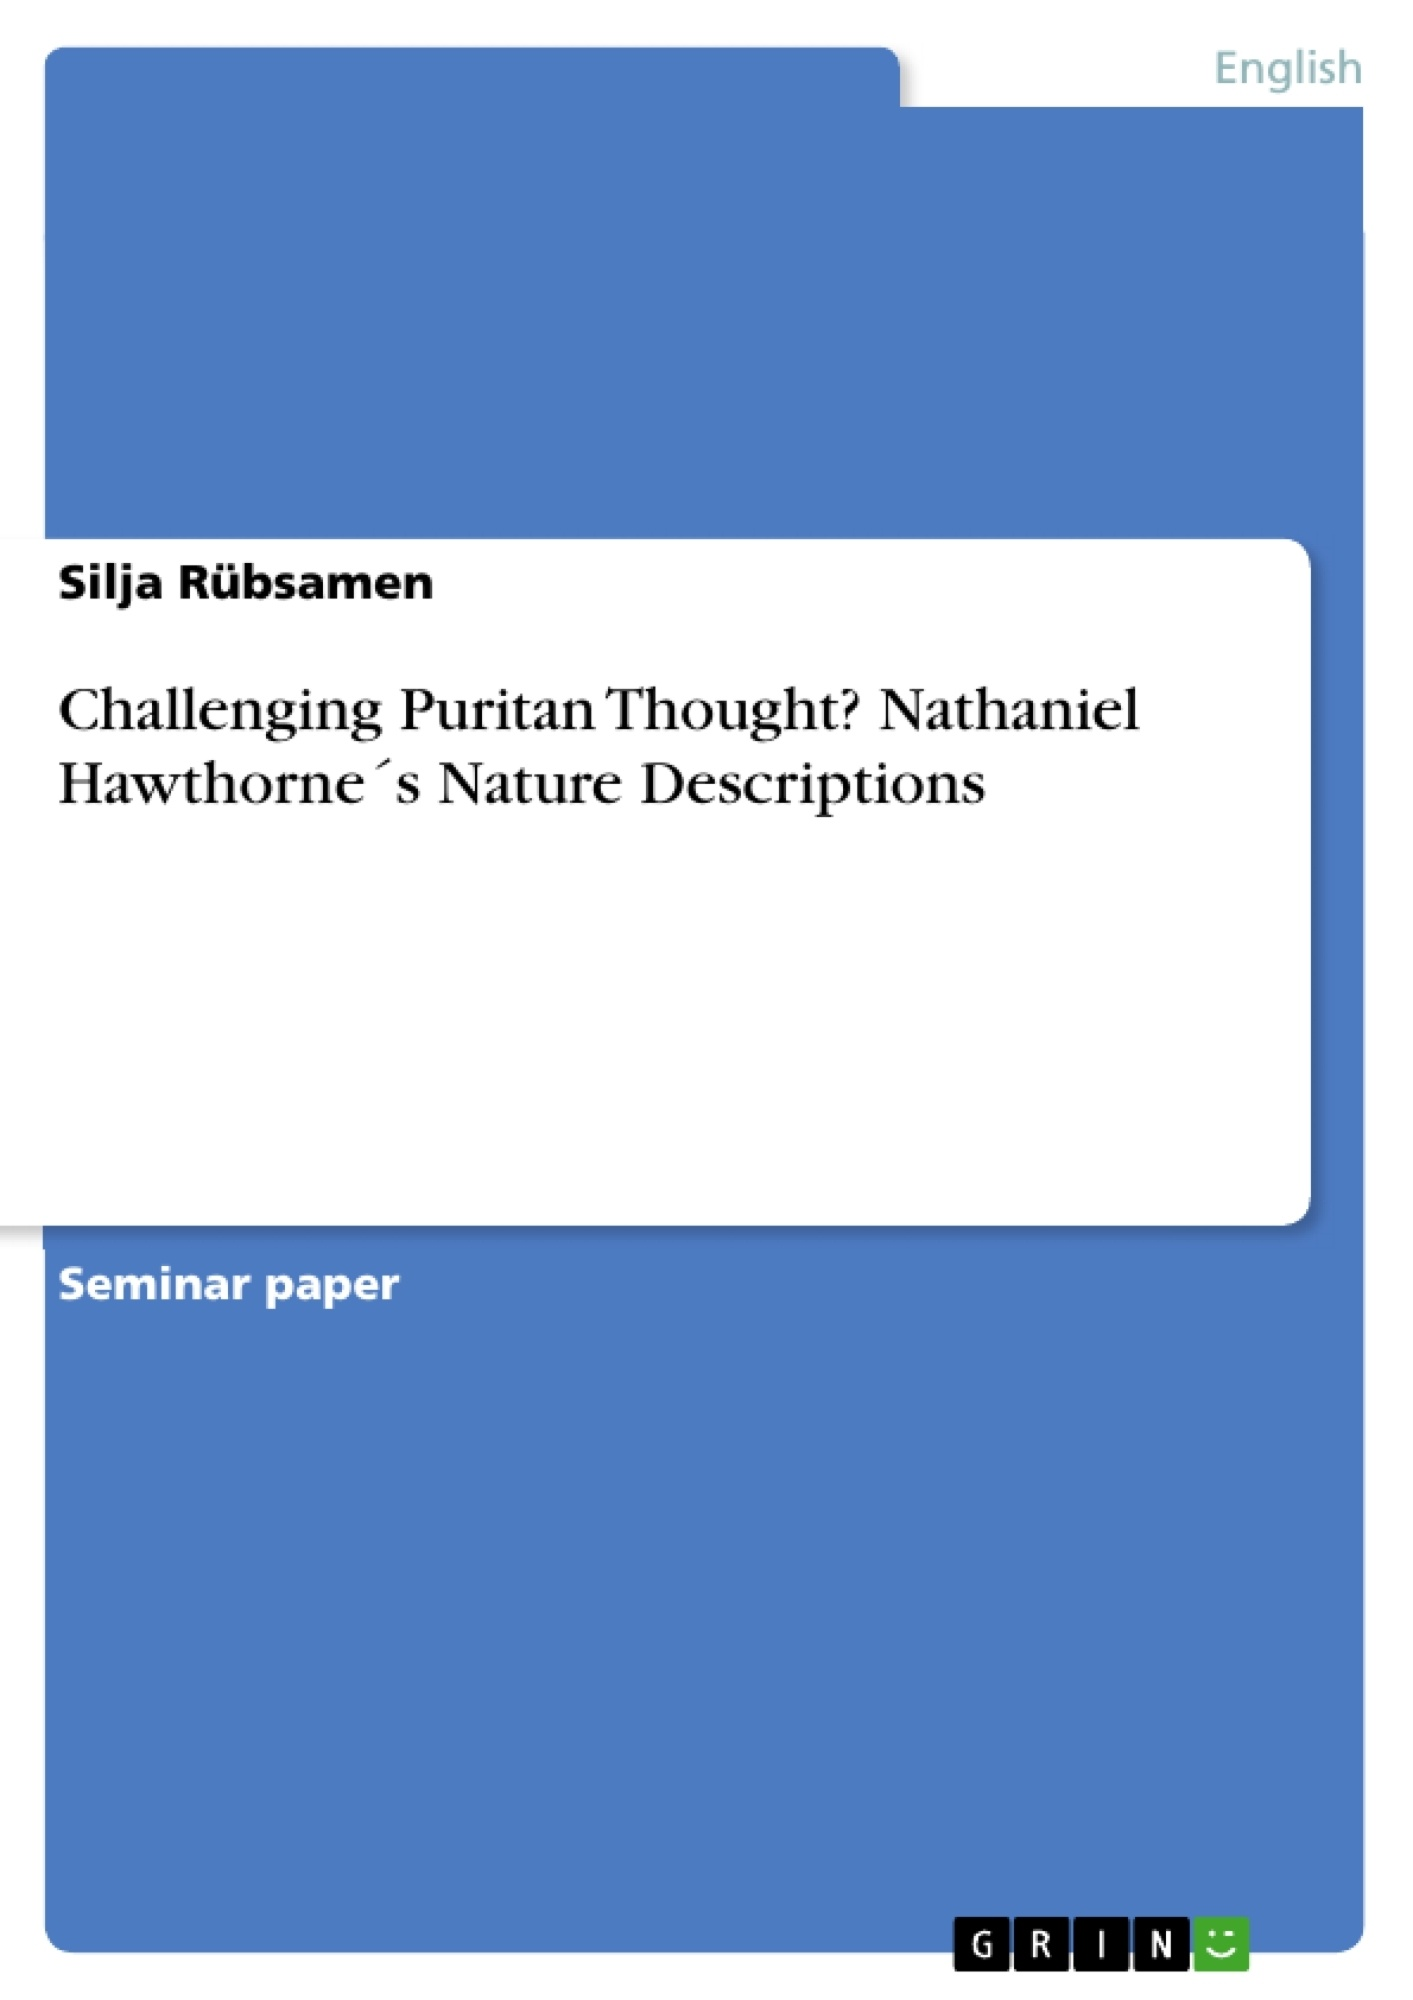 Title: Challenging Puritan Thought? Nathaniel Hawthorne´s Nature Descriptions